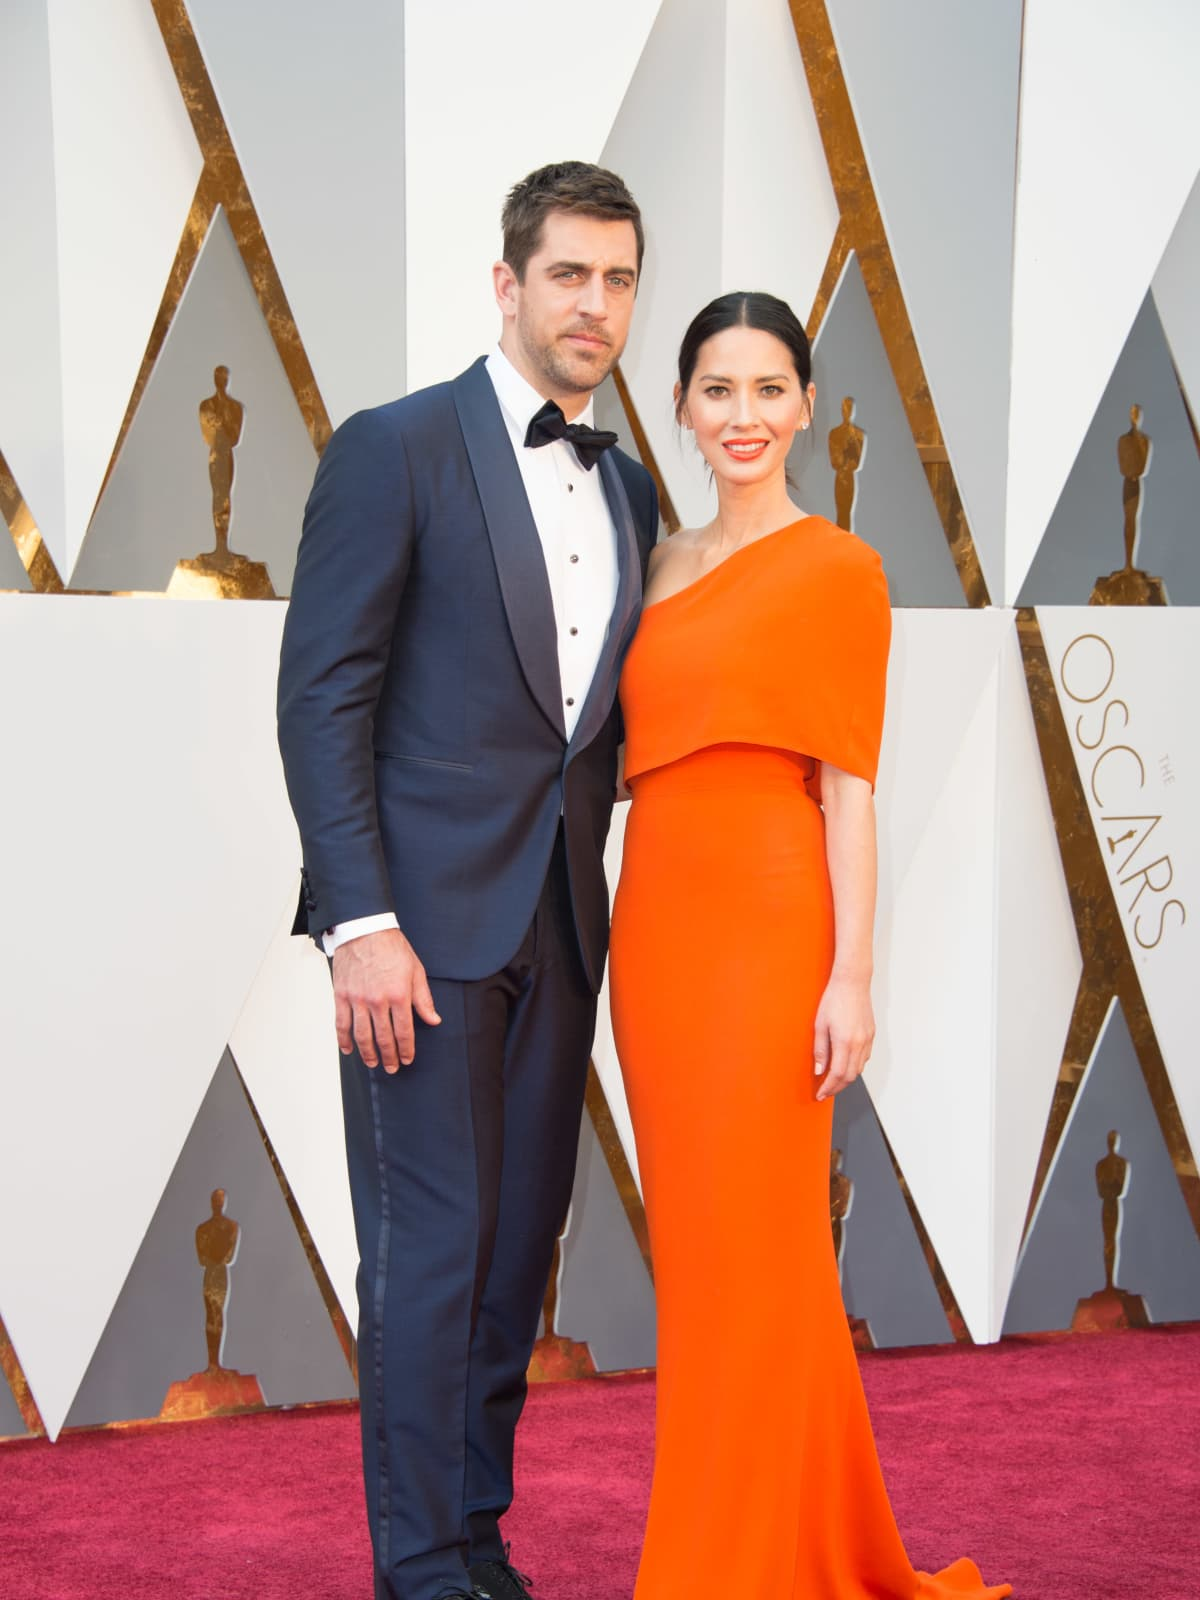 Olivia Munn and Aaron Rodgers at Oscars